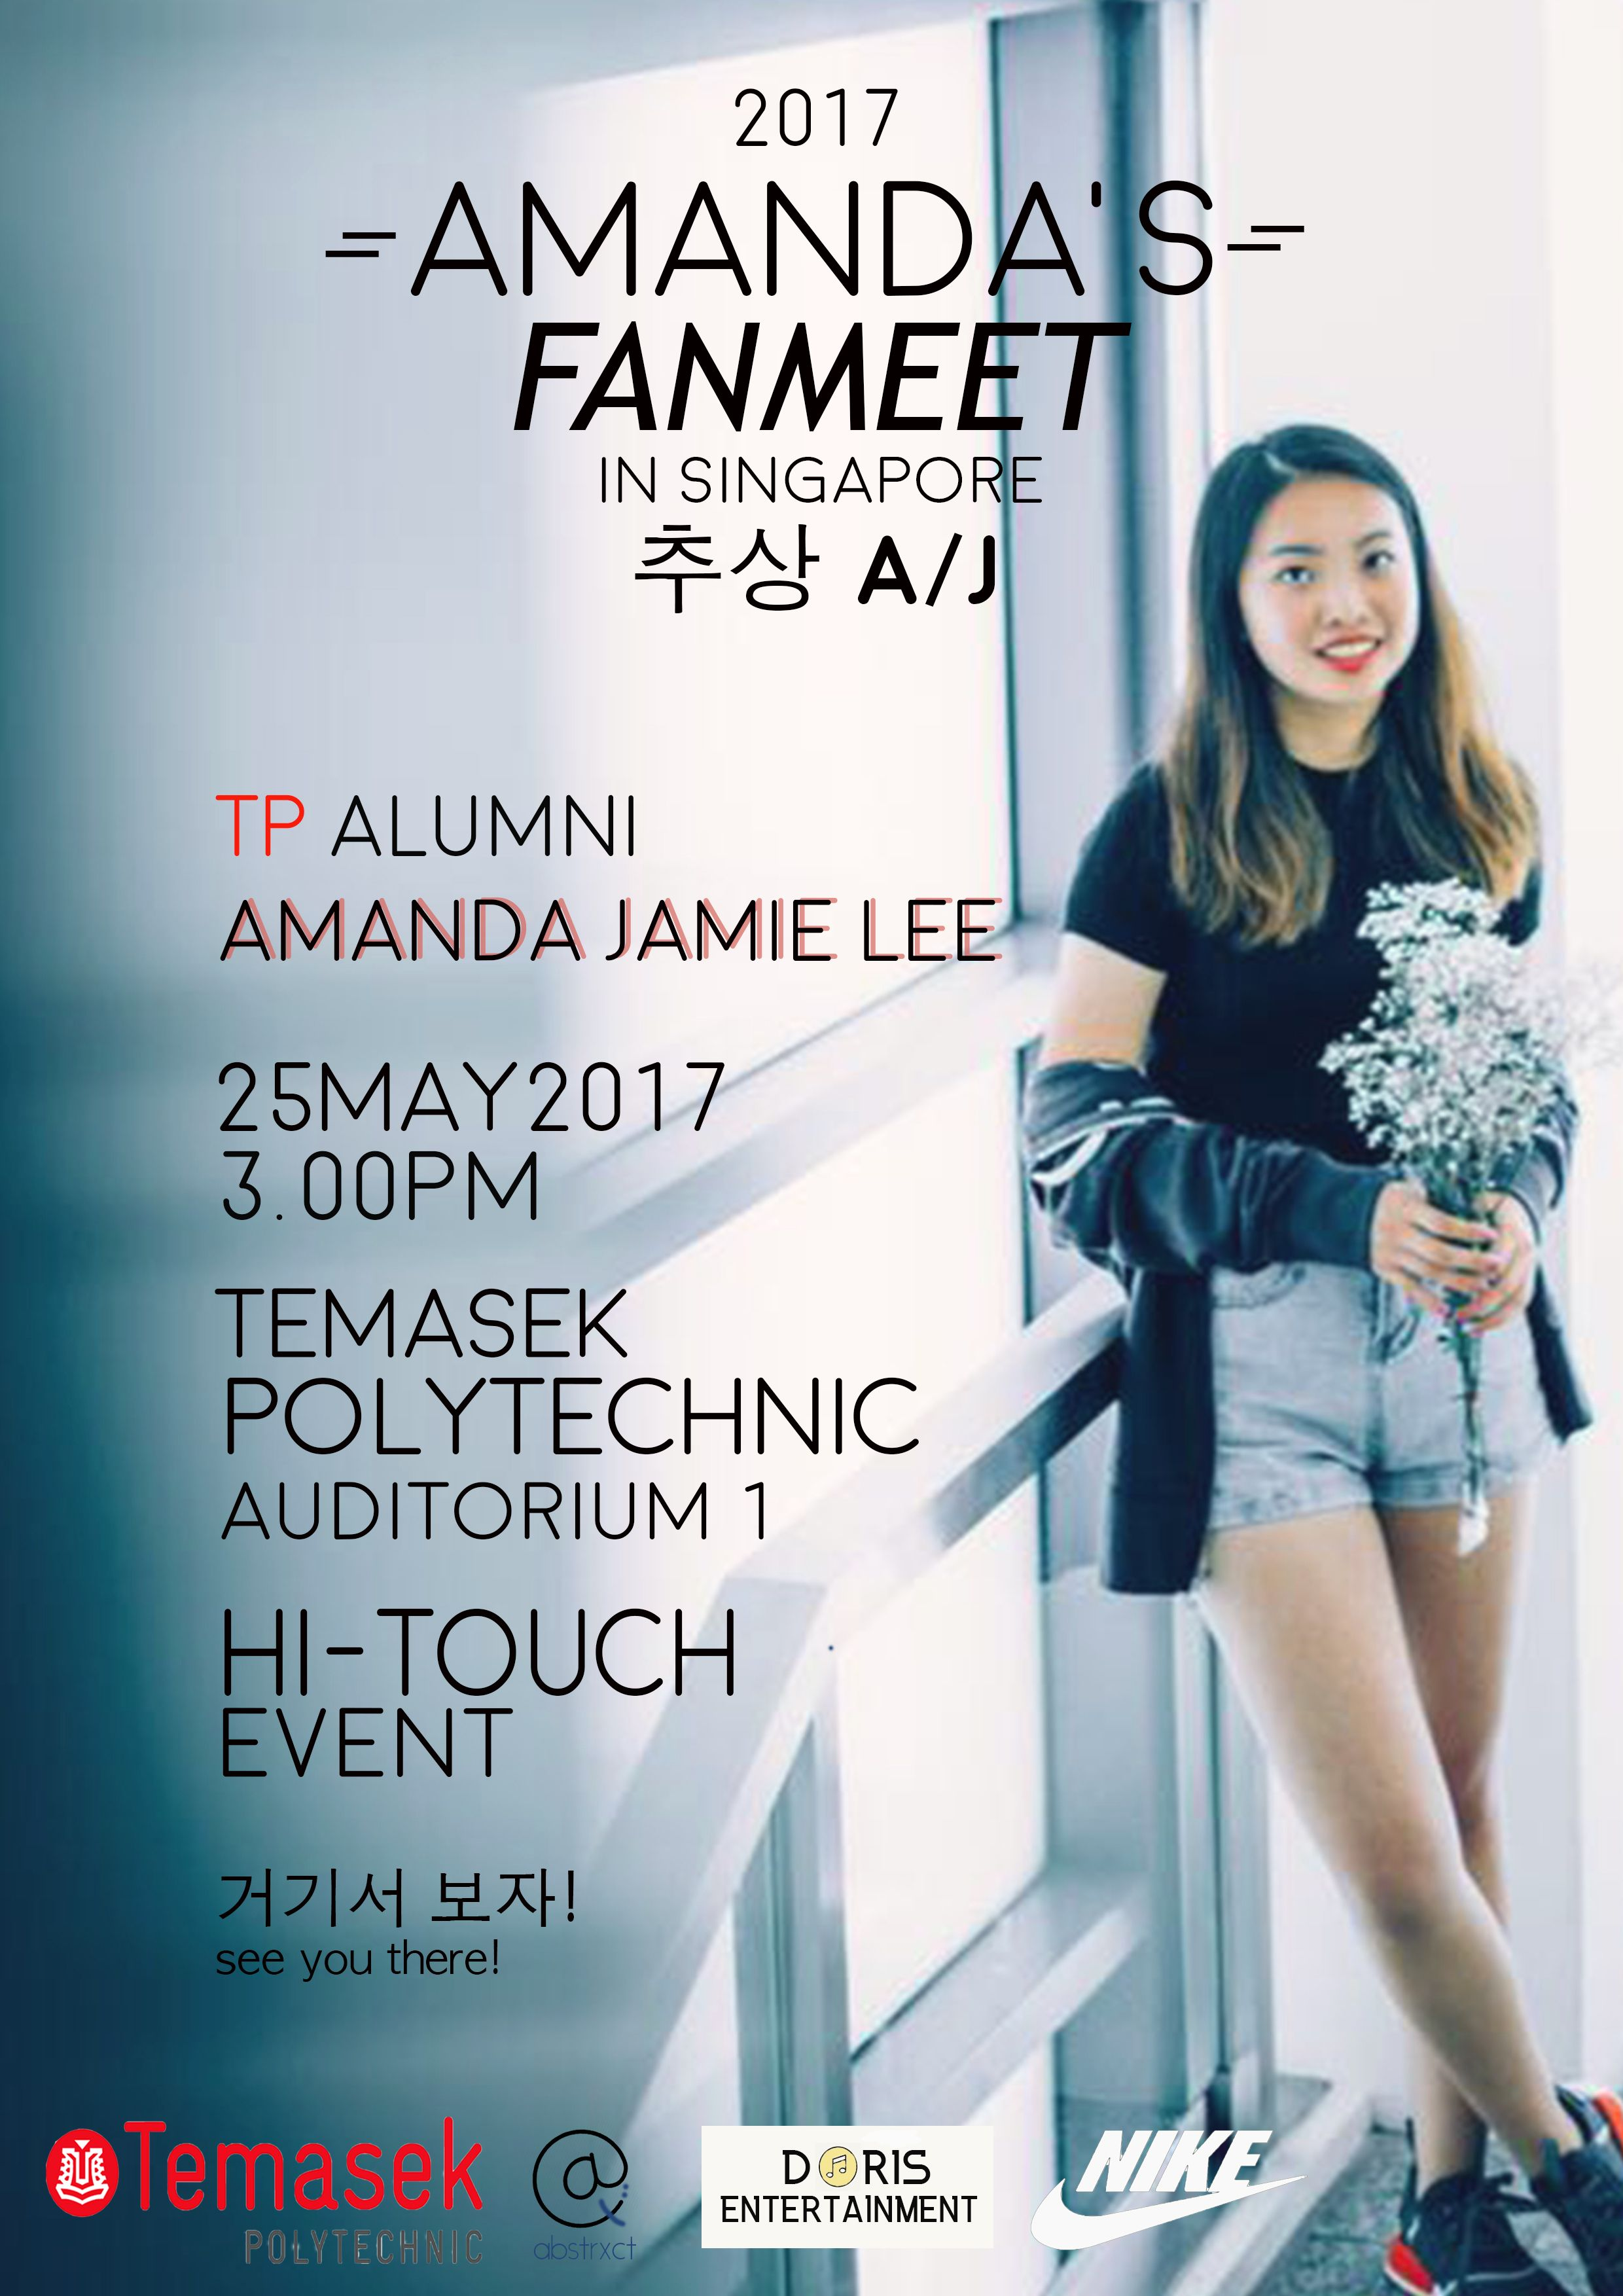 This Is The Fanmeet Poster I Designed For K Pop Idol Amanda Jamie Lee Aka A J I Tried To Make It Look As Minimalistic And Aesth Jamie Lee Kpop Idol My Design